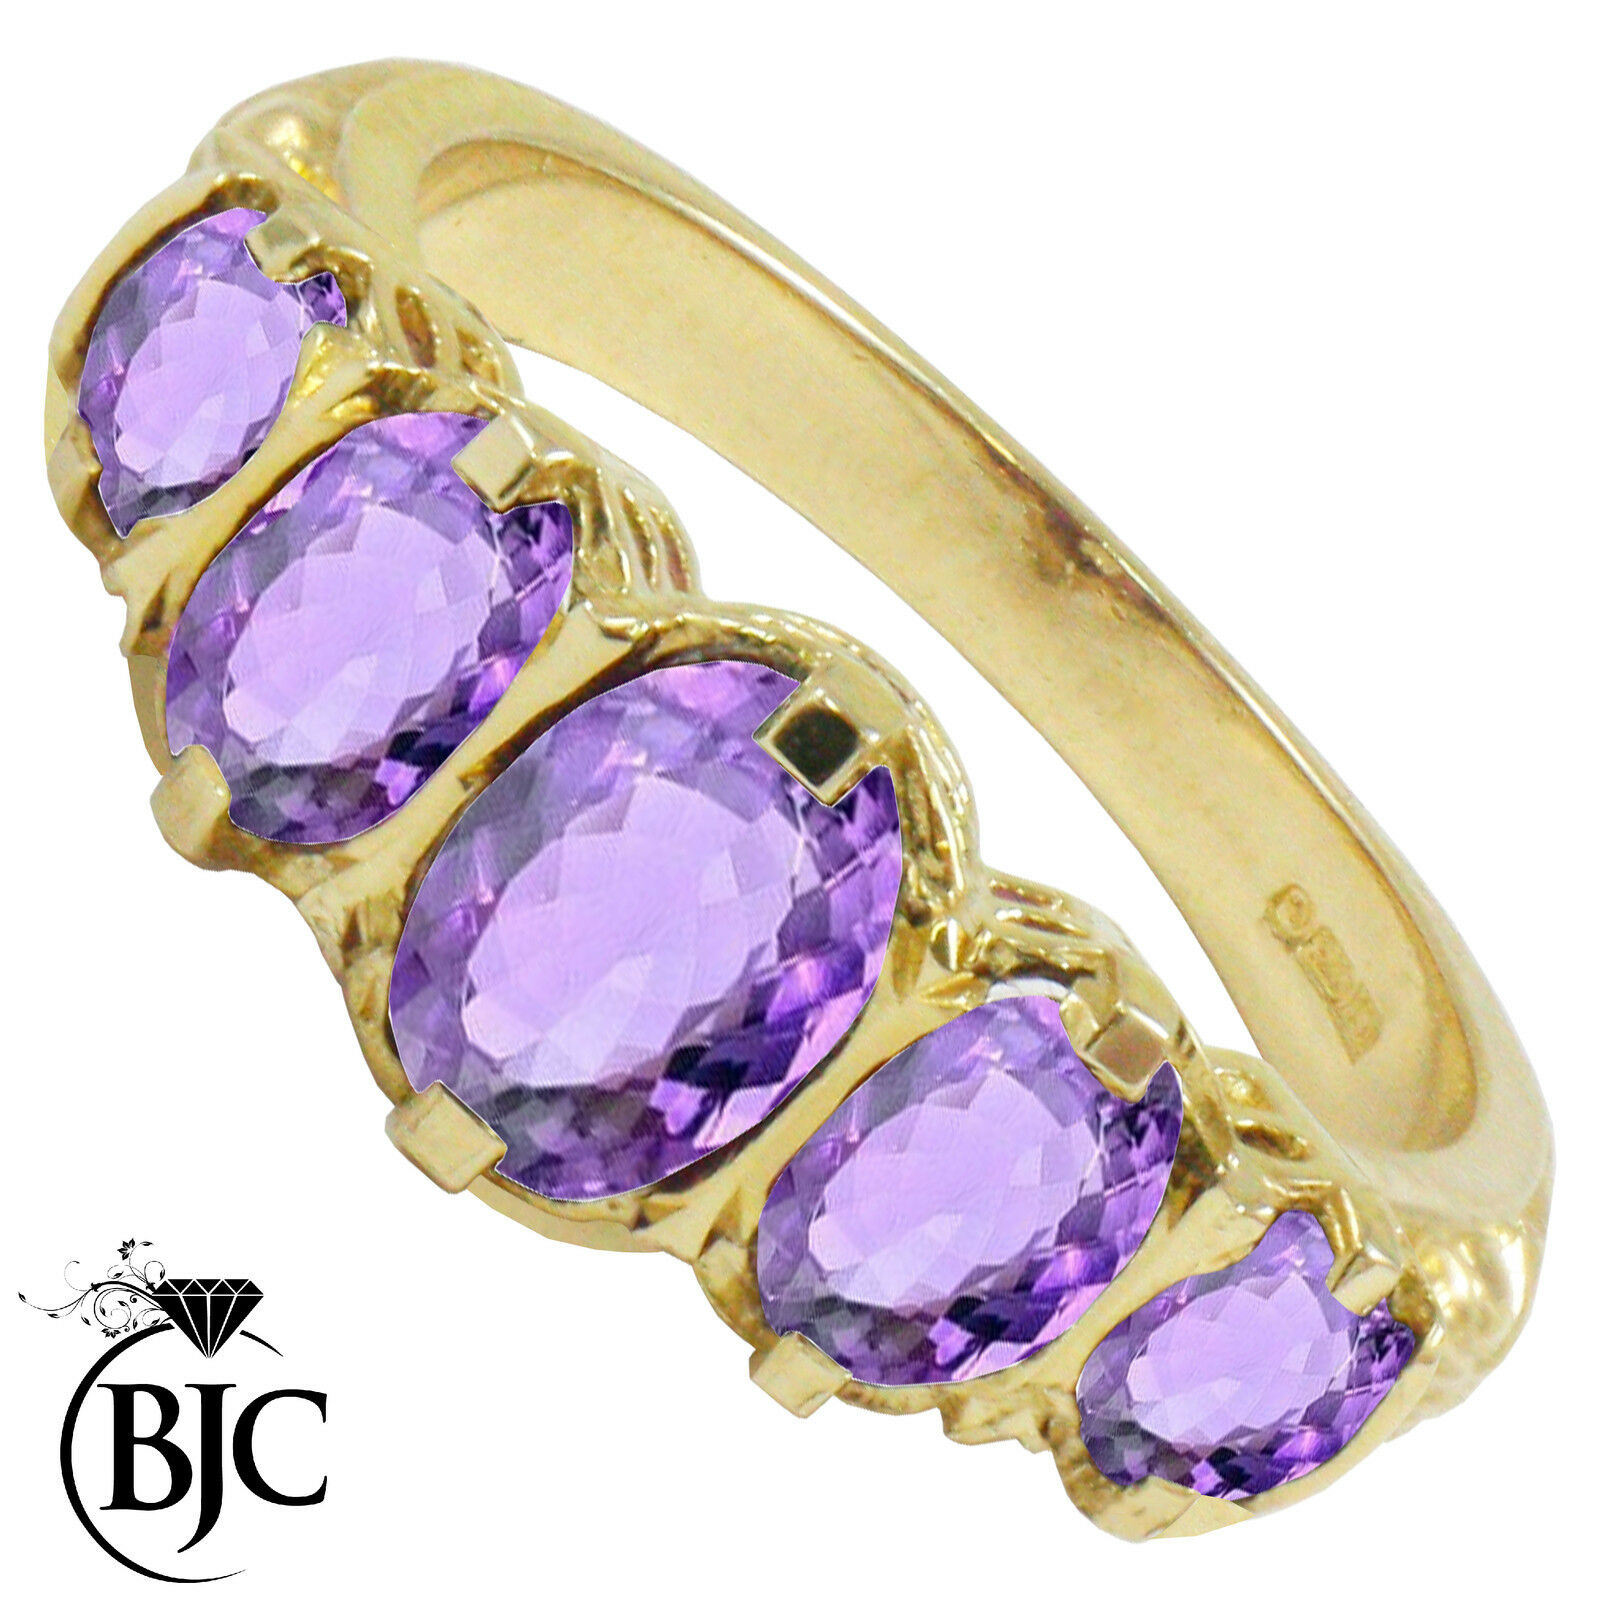 BJC® 9ct Yellow gold Victorian   Gypsy Style Graduating Amethyst 5 Stone Ring